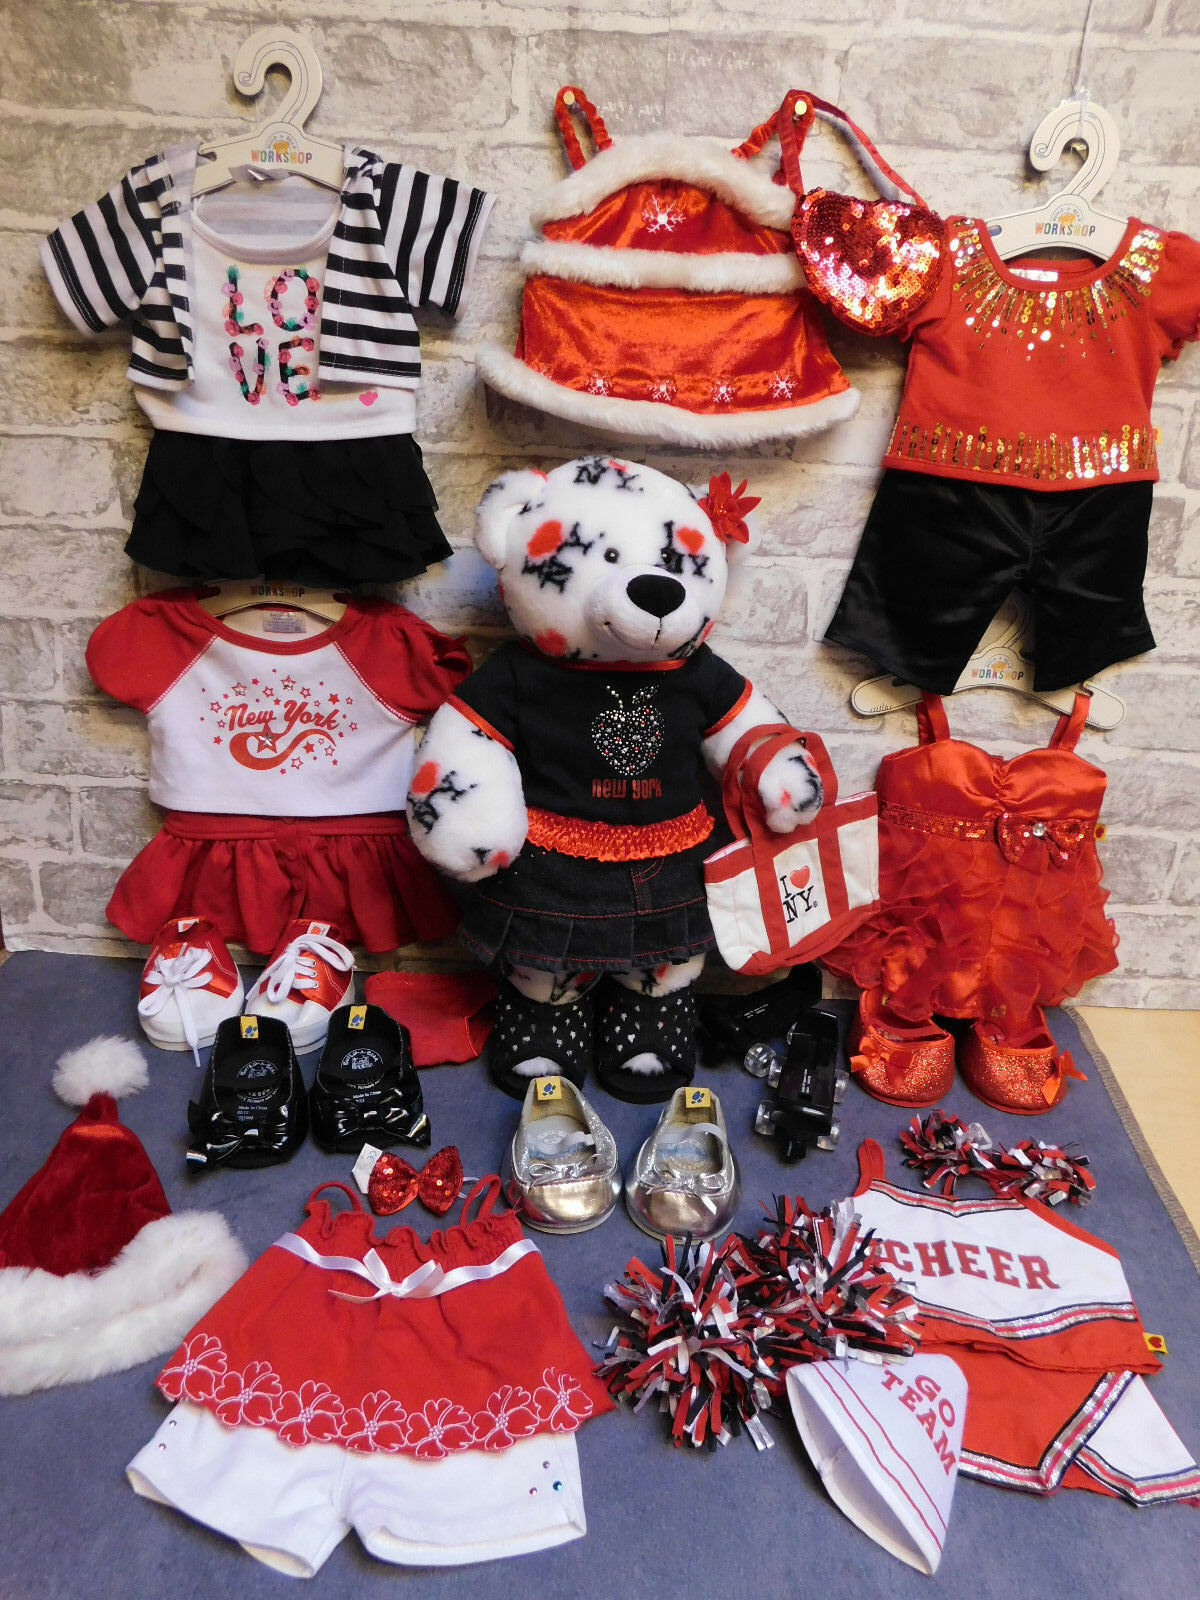 NEW York Build a Bear & Ragazze Abiti Rossi Bundle-scarpe, borsa, Regalo di Natale